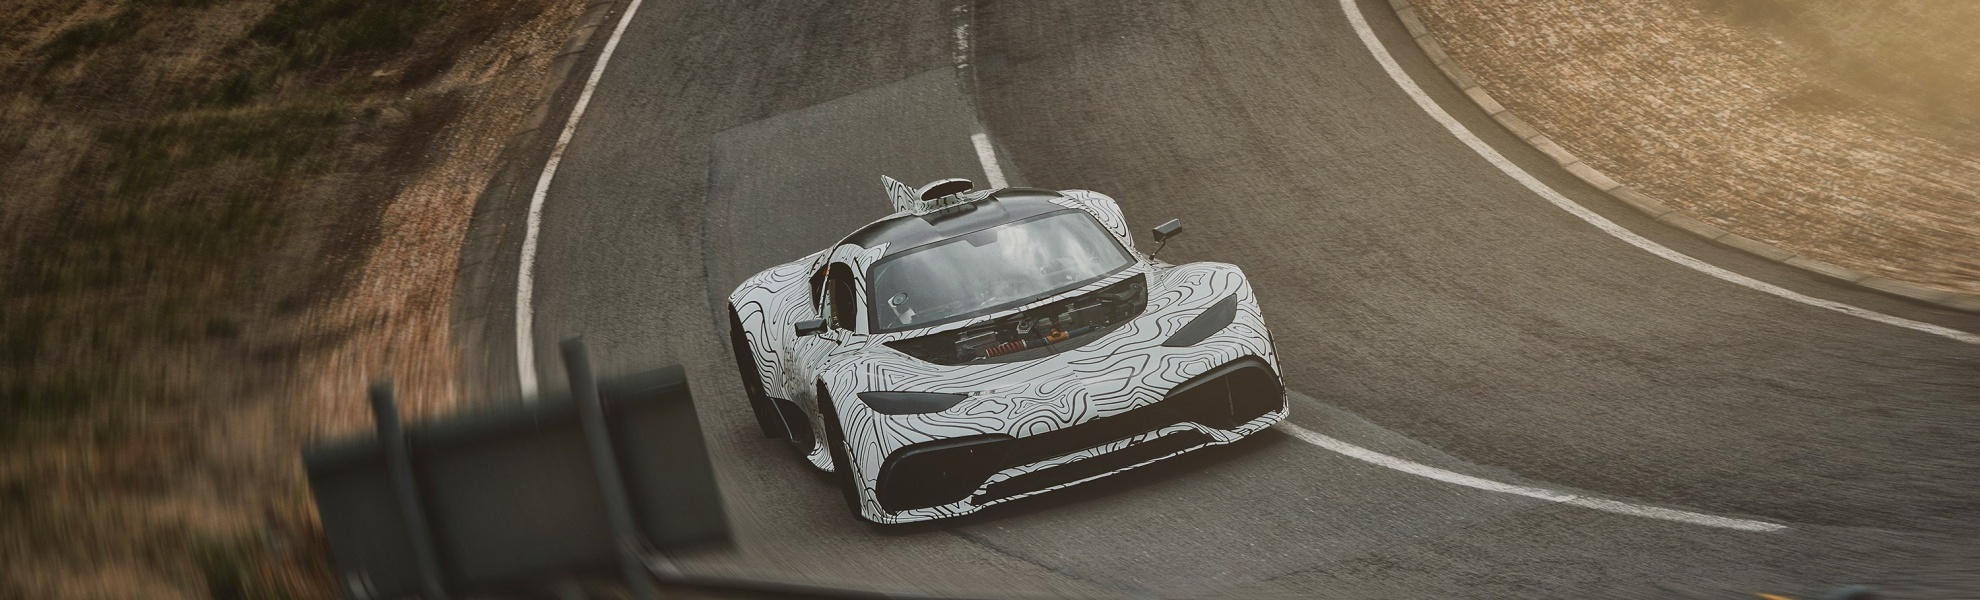 mercedes_amg_project_one_testes_3.jpg